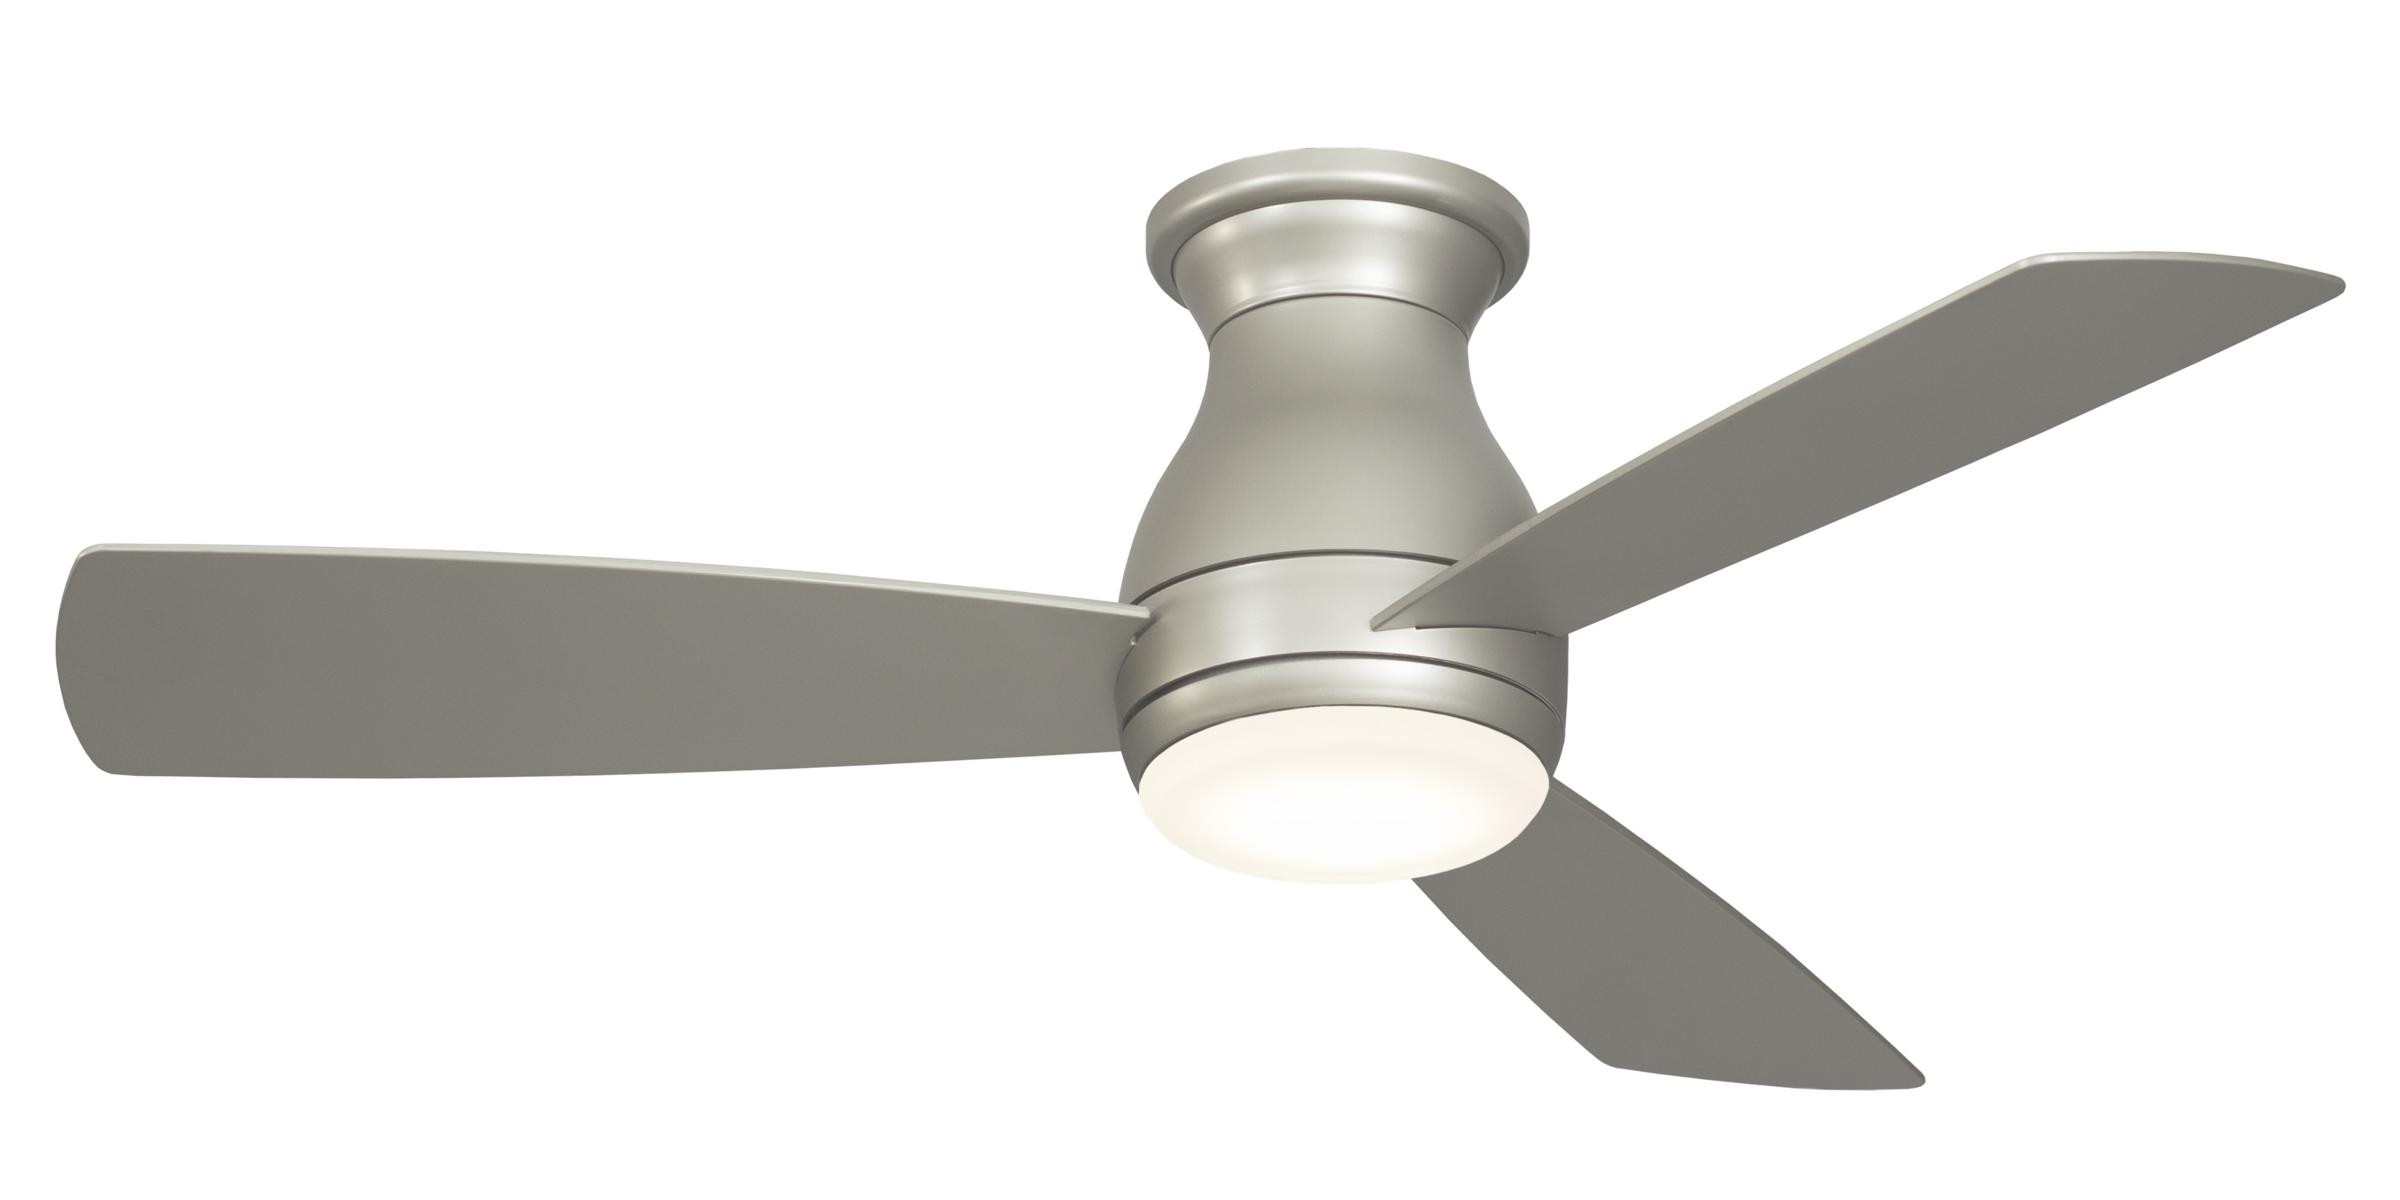 Fanimation Hugh 44 Ceiling Fan Model Fps8332Bnw In Brushed Nickel Within Widely Used Outdoor Ceiling Fans For Windy Areas (View 4 of 20)